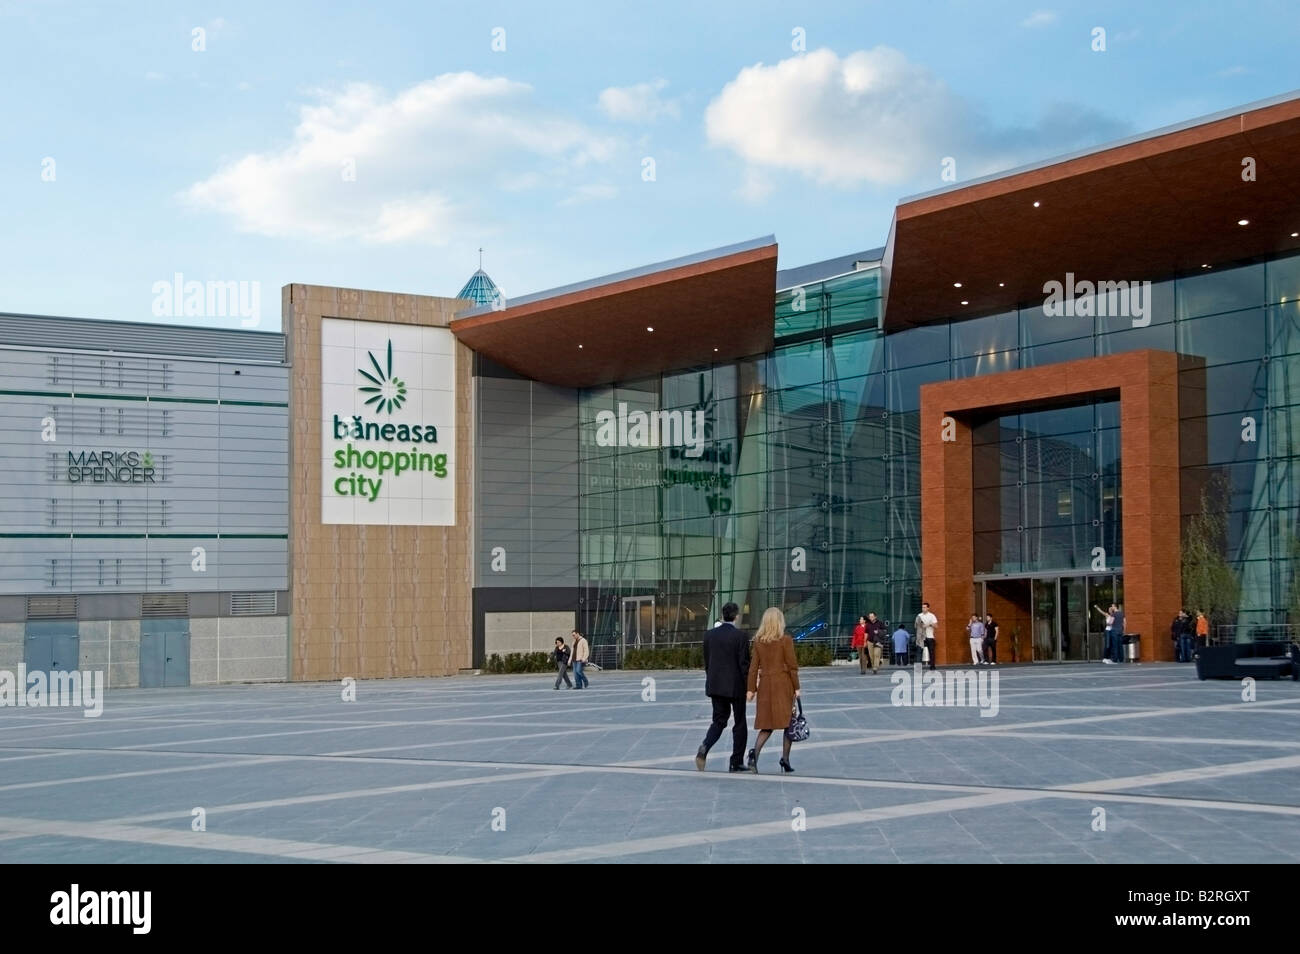 Baneasa New Modern And Contemporary Exterior Of Shopping Mall Centre Bucharest Romania Europe EU